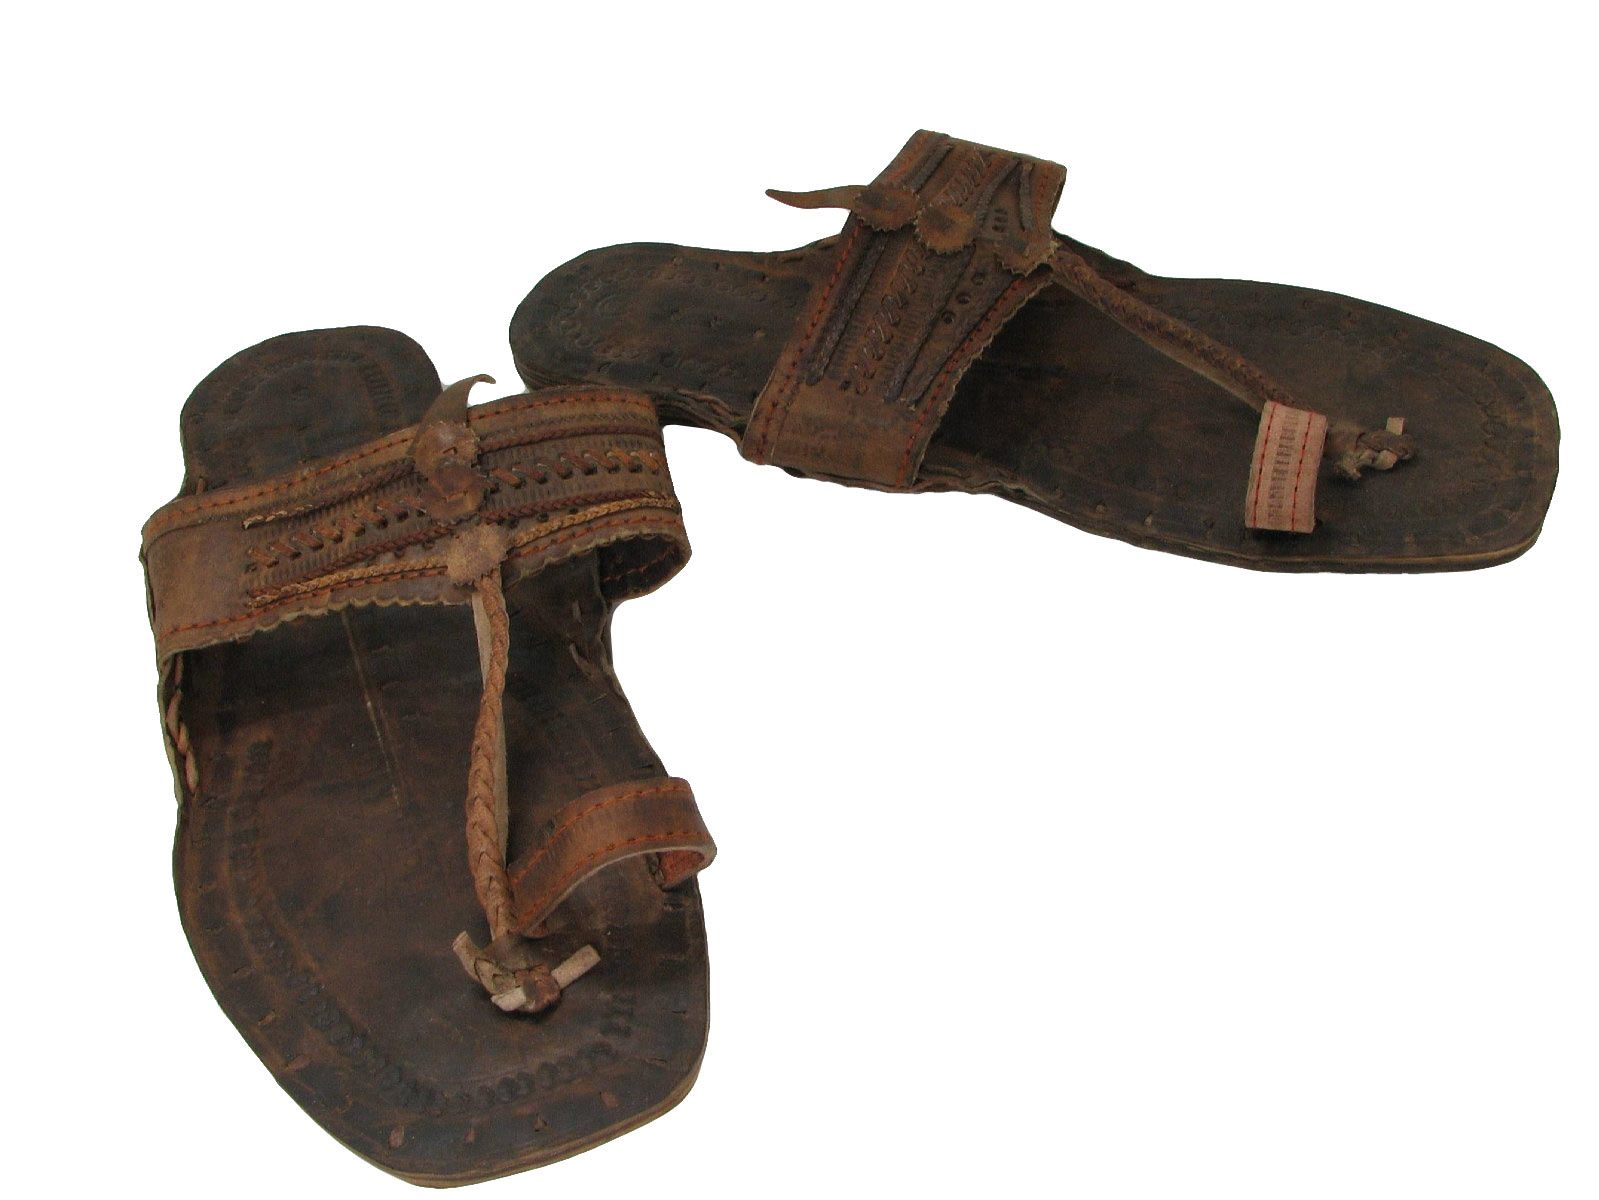 0c42e26dadc0 Buffalo sandals - I remember wearing these. We would stand in the bathtub  with them on to make them mold to our feet.